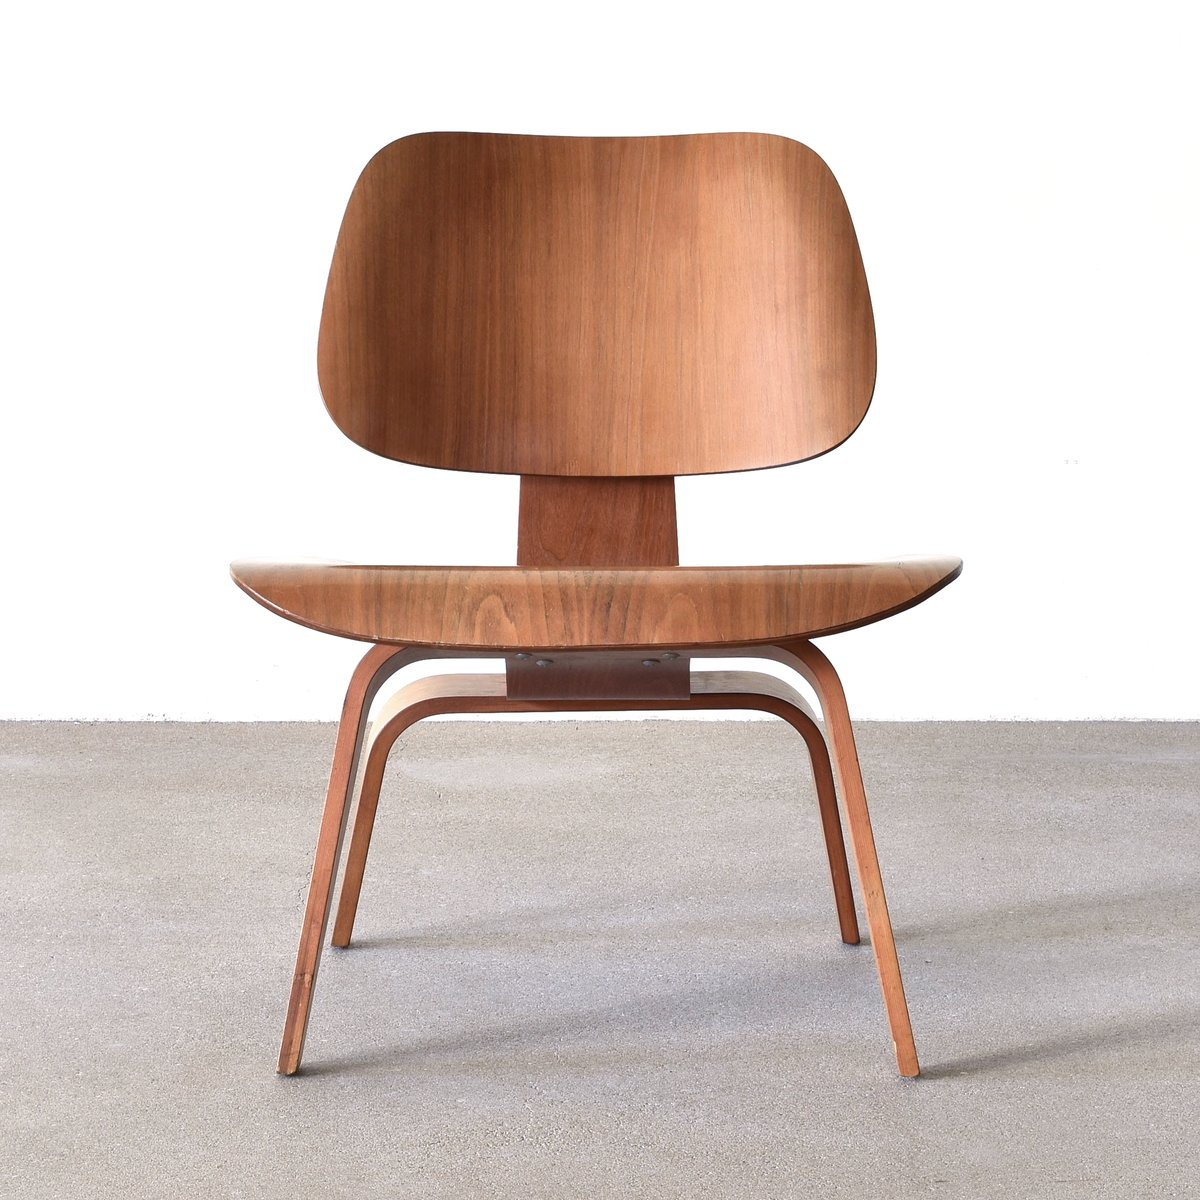 Herman Miller Eames Chair American Lcw Walnut Lounge Chair By Charles And Ray Eames